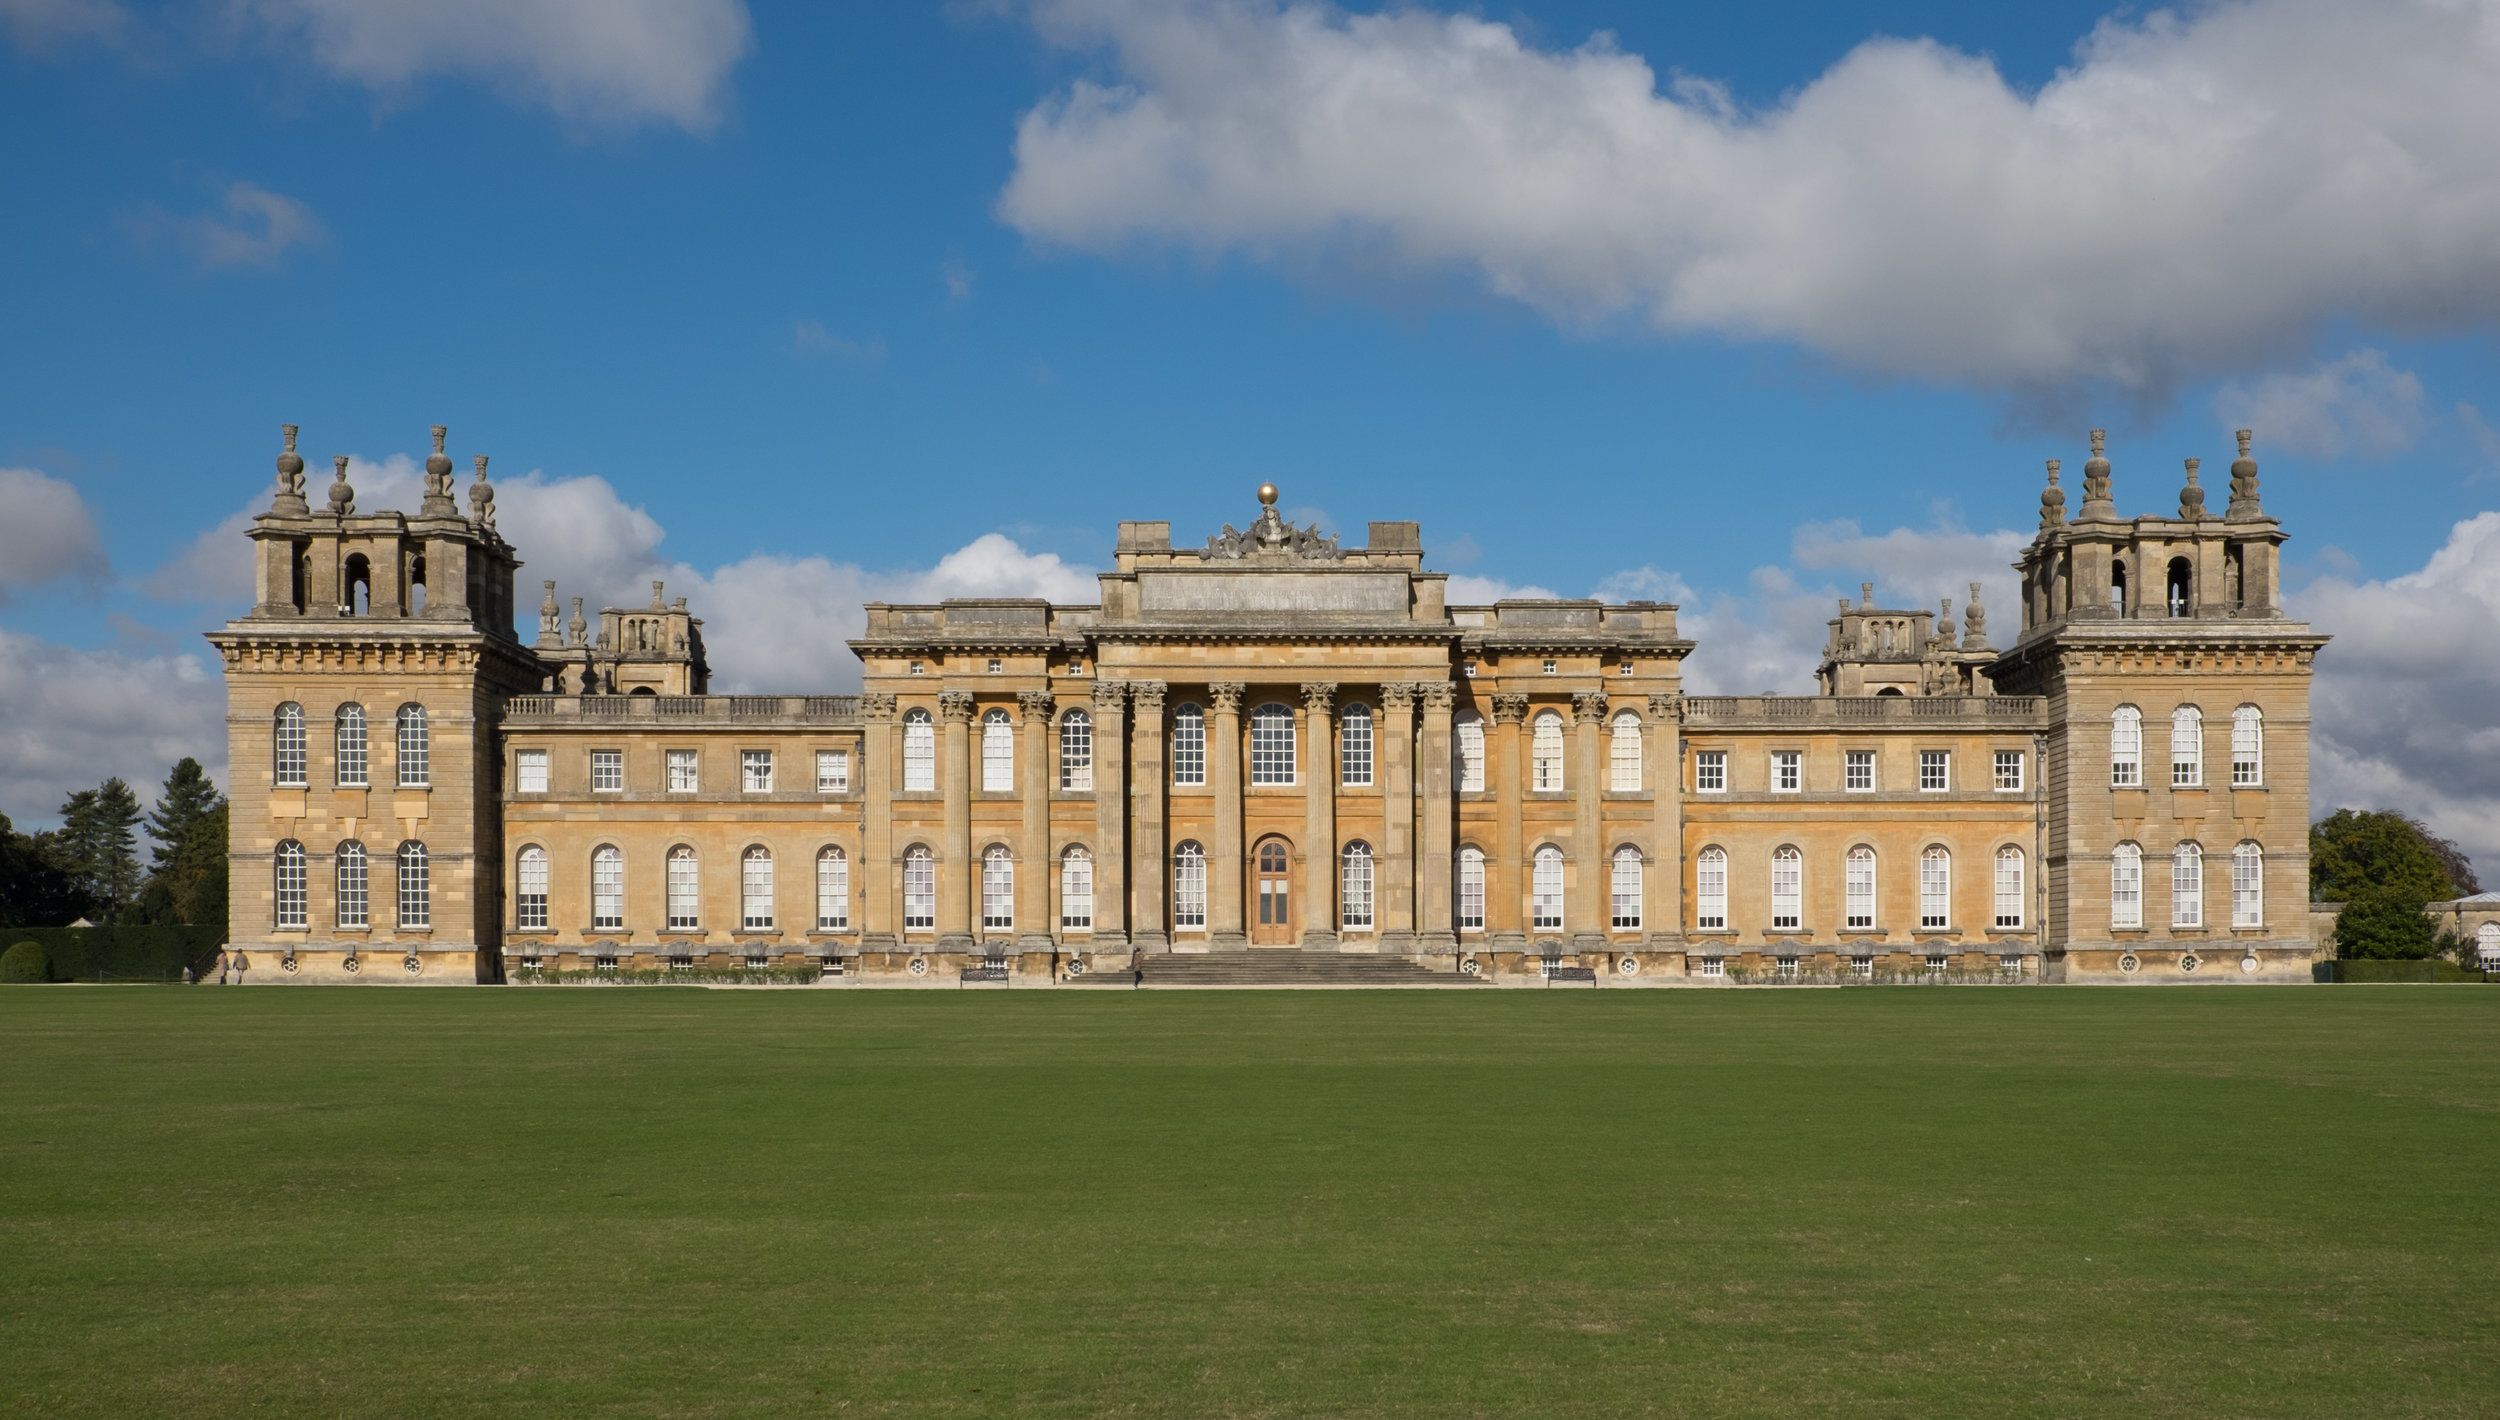 Blenheim_Palace_facade_October_2016.jpg